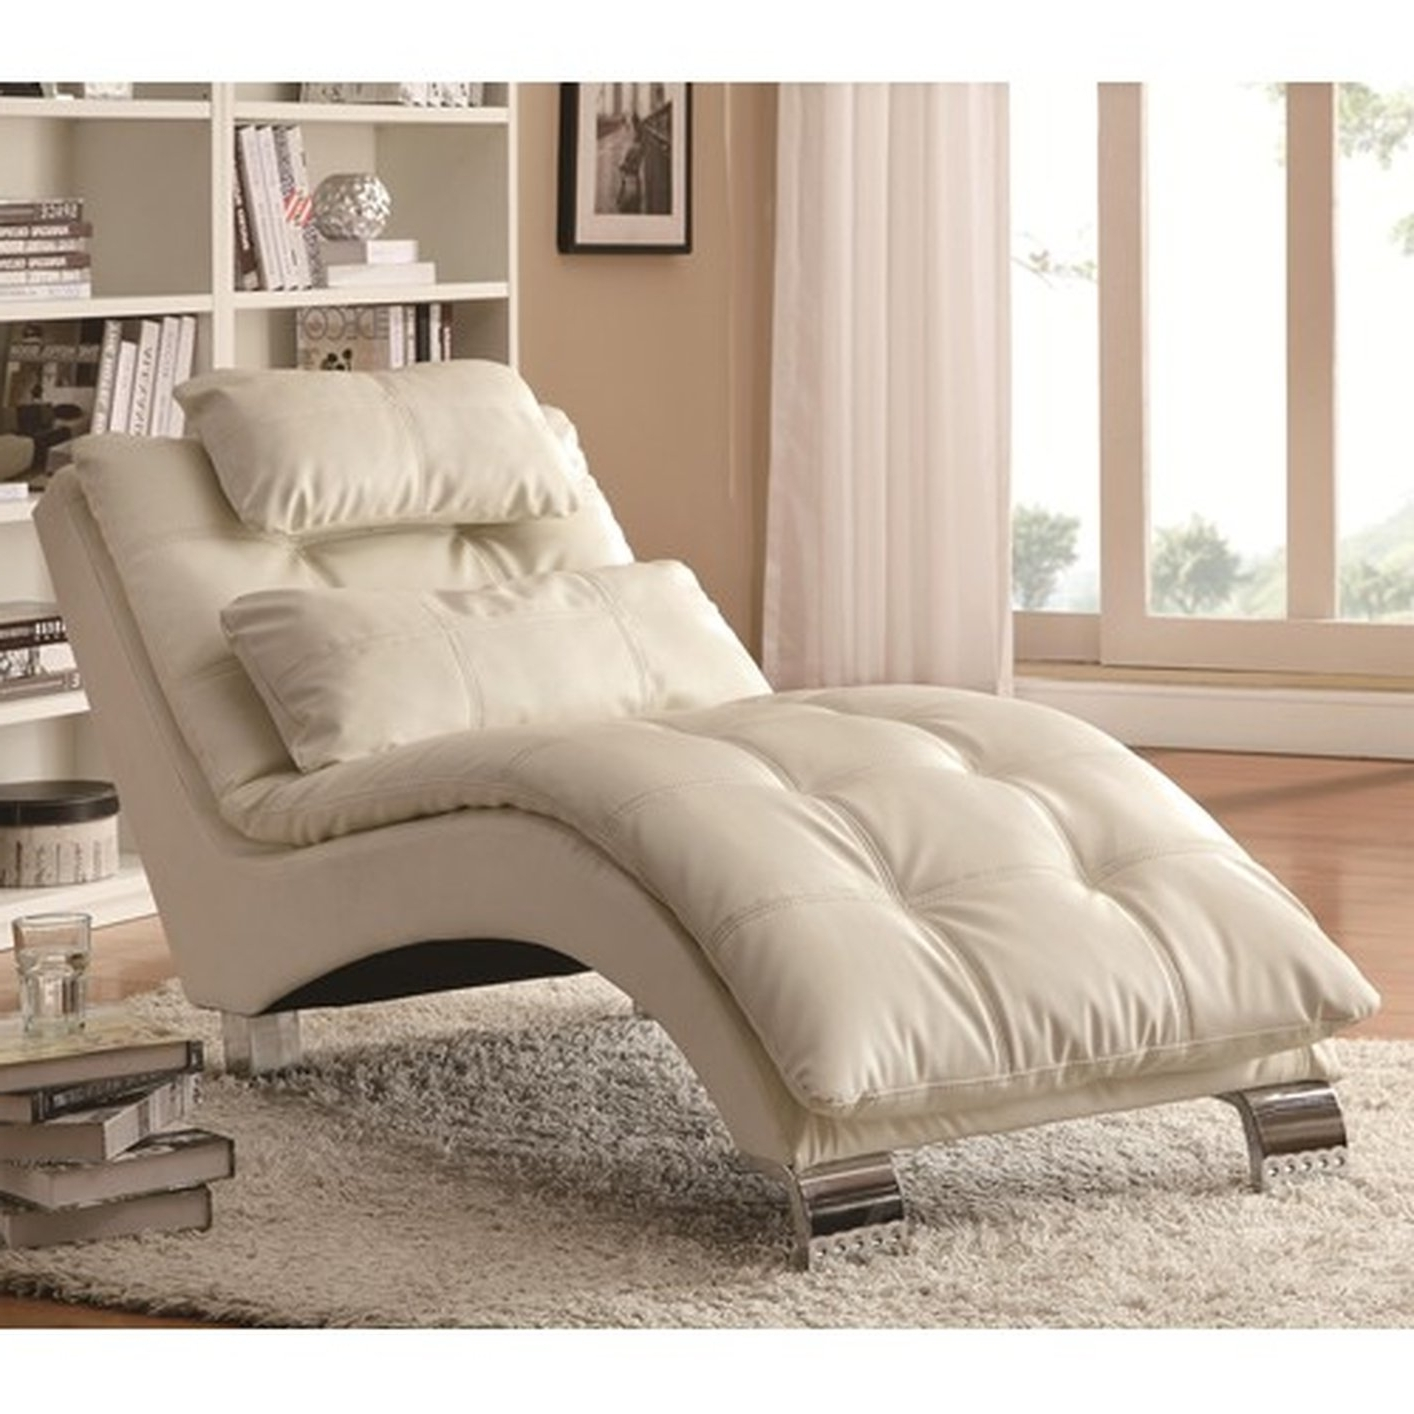 Latest Decor Of White Leather Chaise Lounge With Hstar607Karl Bedroom Pertaining To White Leather Chaises (View 12 of 15)